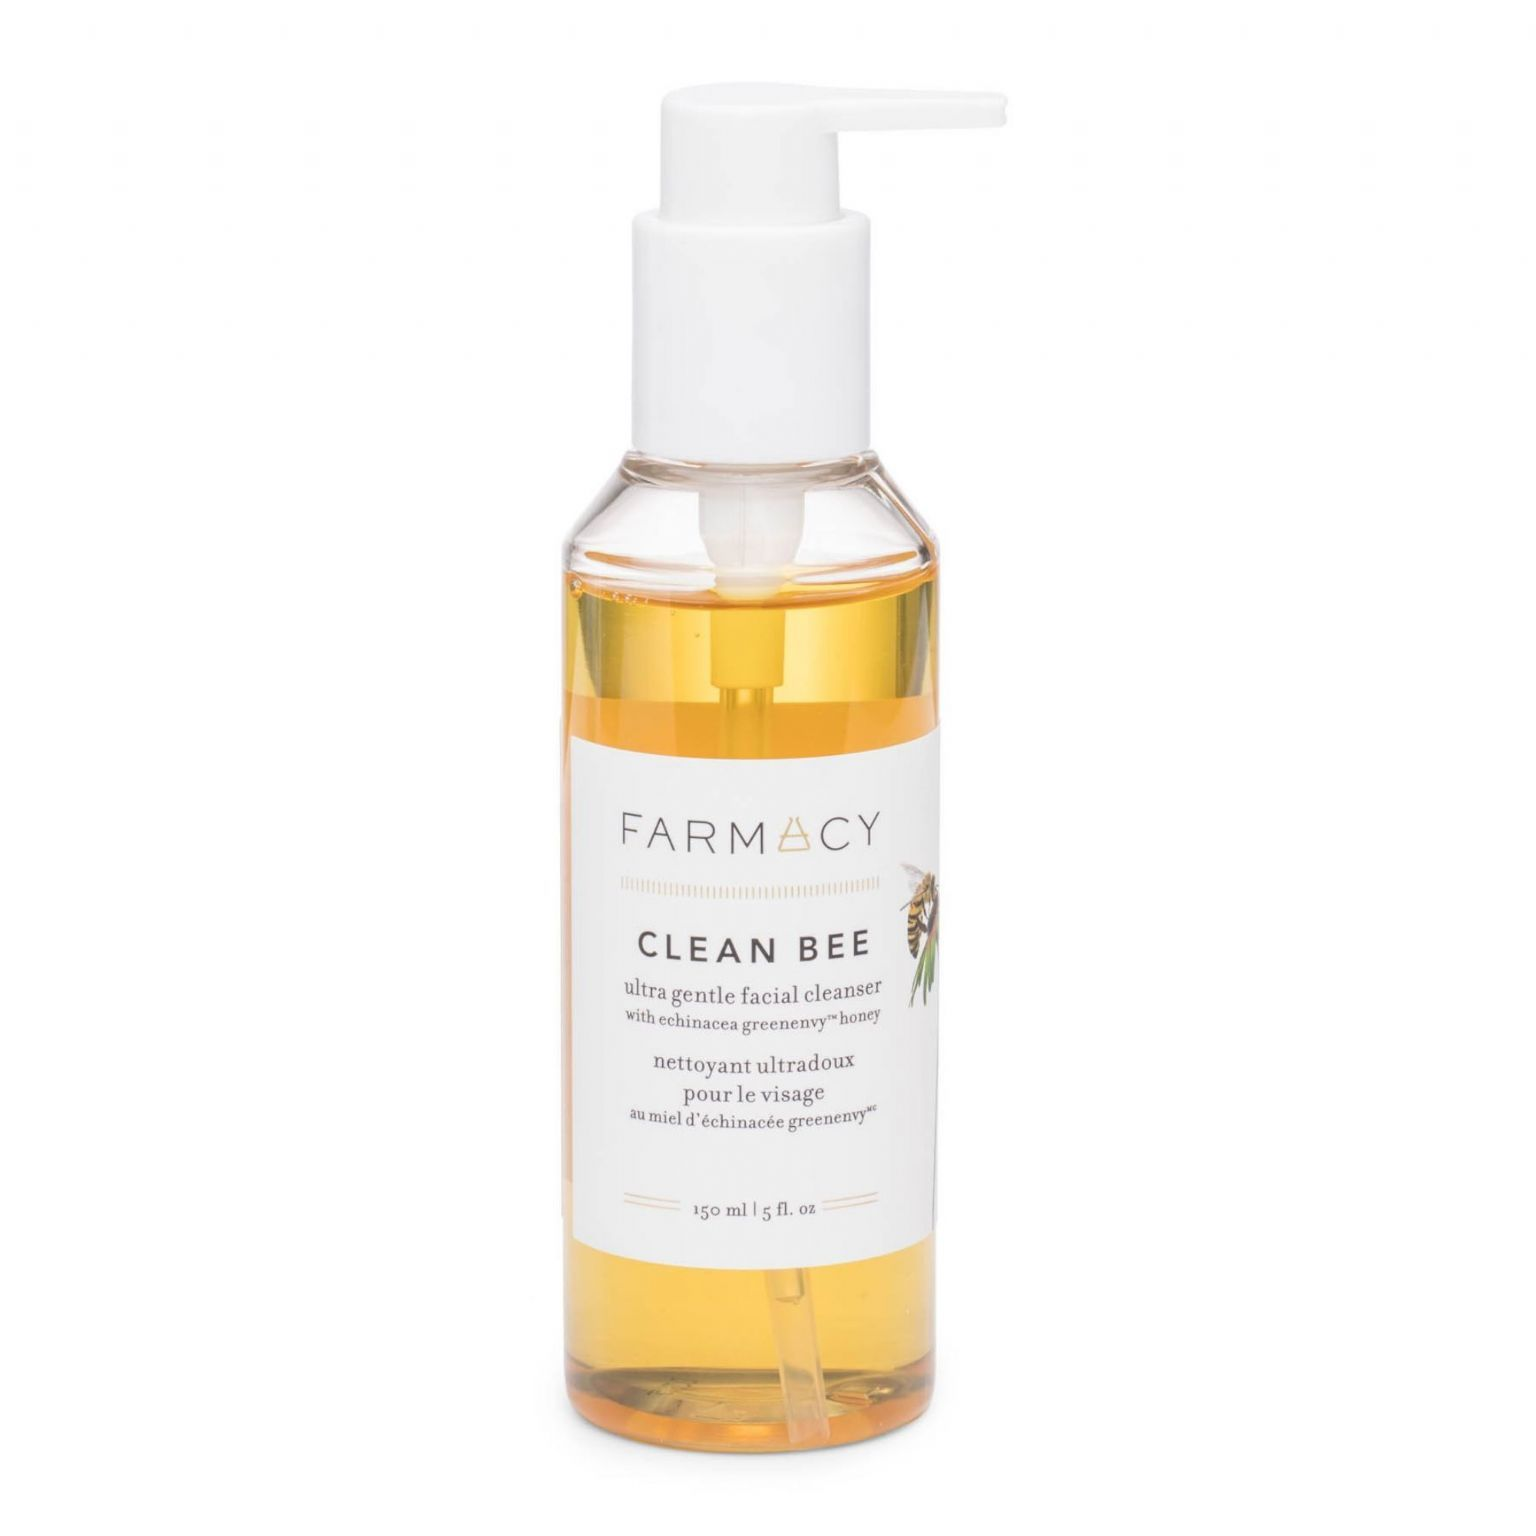 Clean Bee Ultra Gentle Facial Cleanser